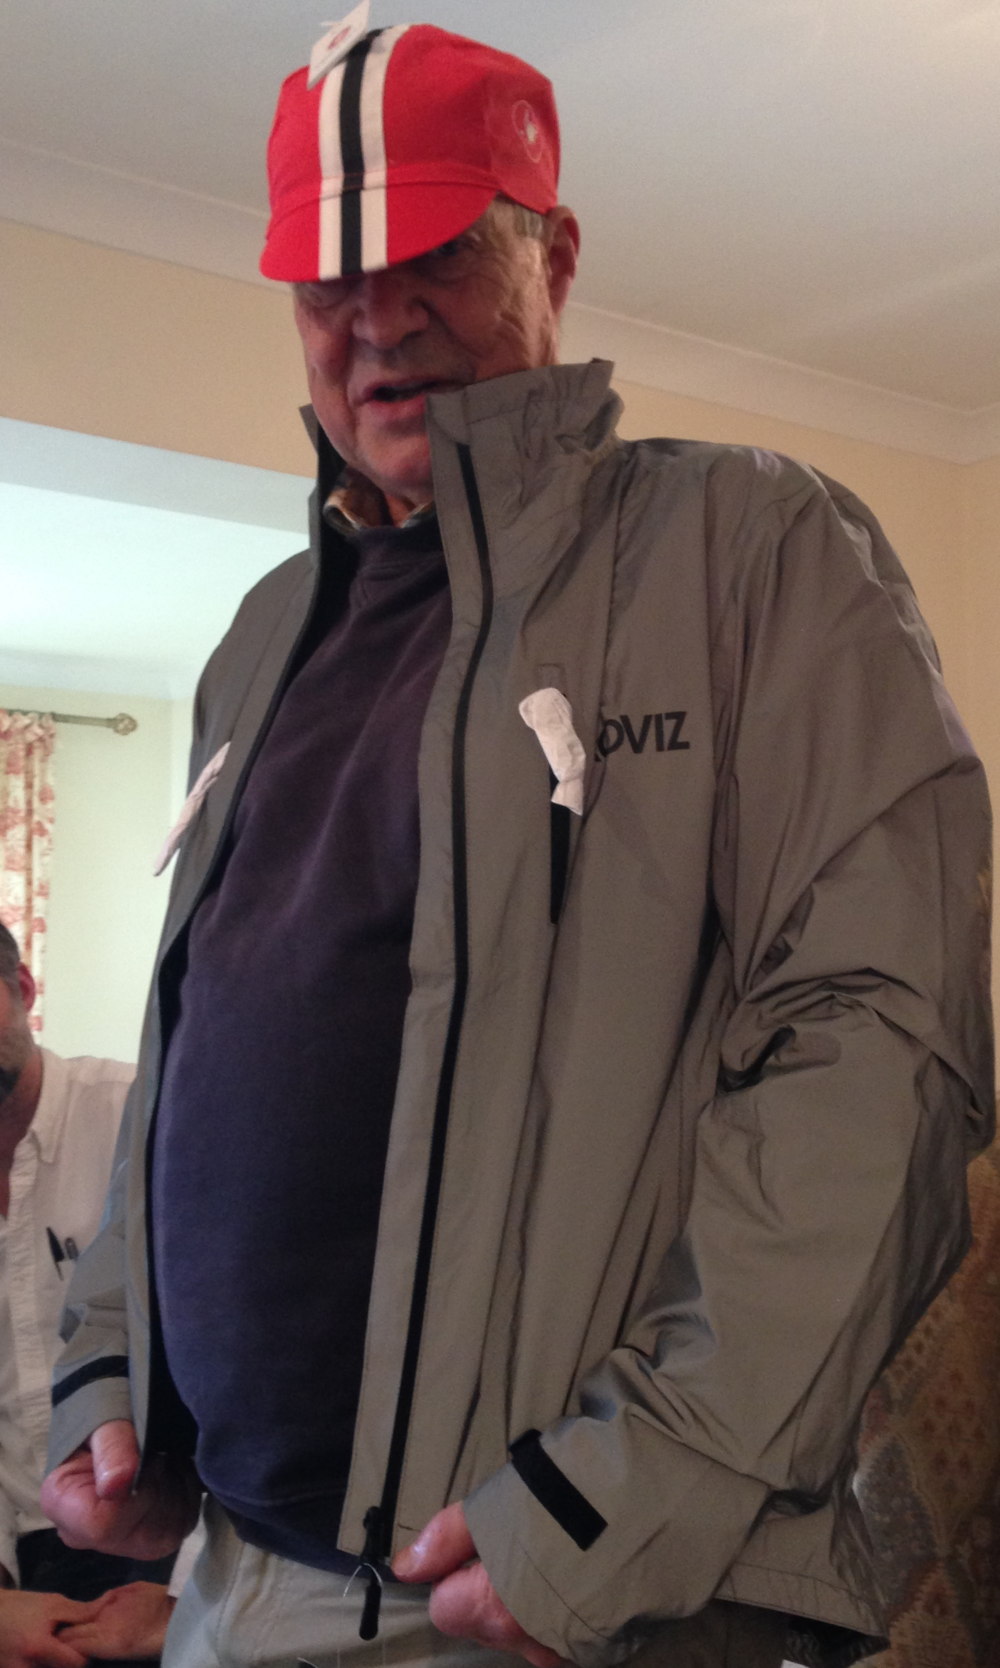 Uncle Tony aka 'Shimmering Demon' sporting his new Proviz Reflect360 jacket and Castelli cycling cap